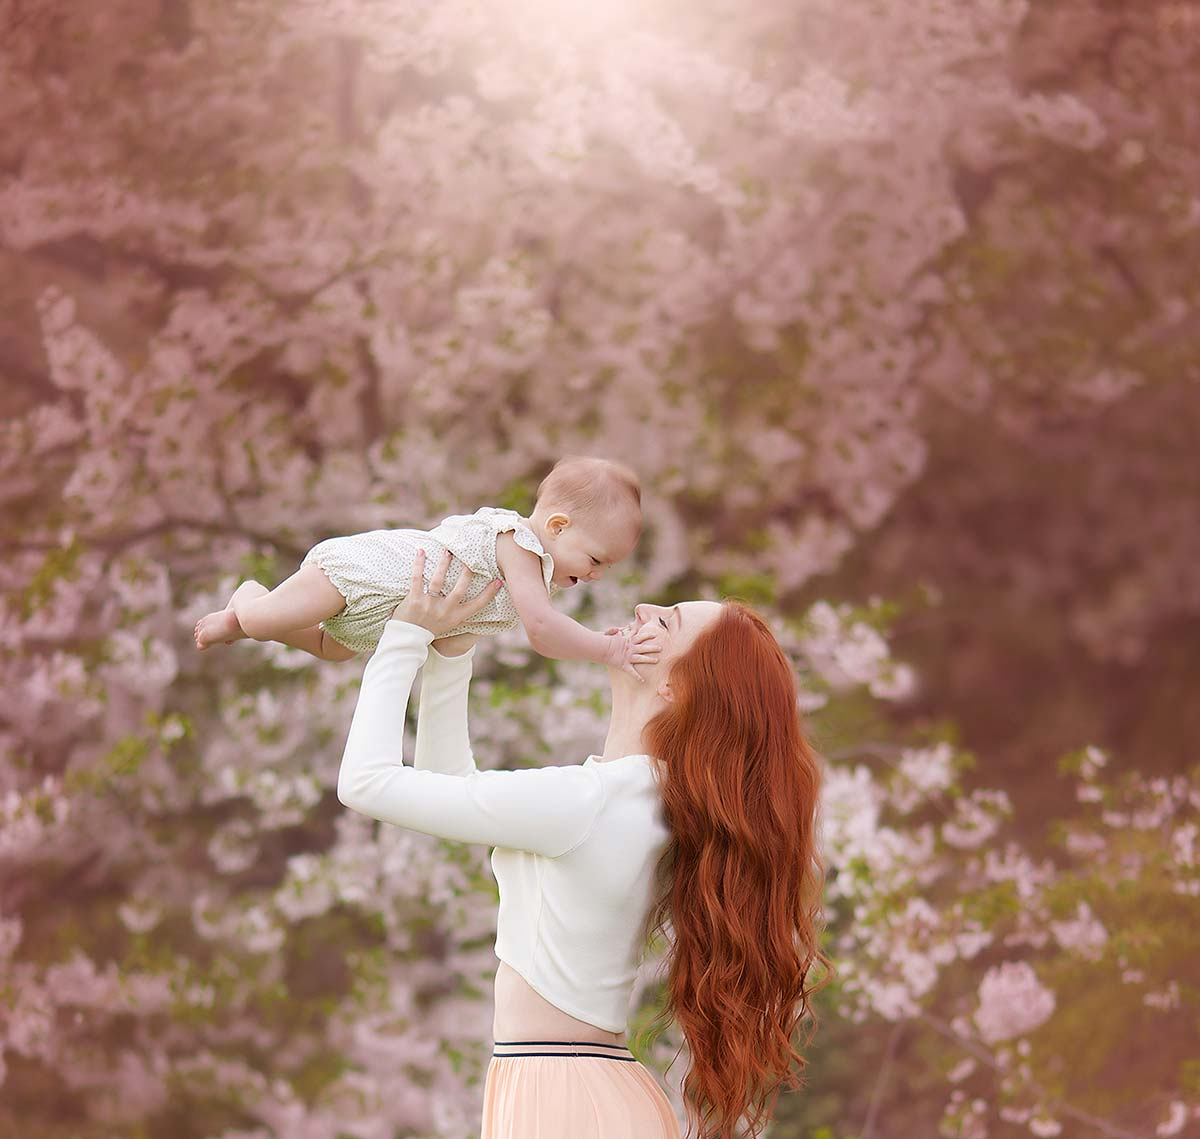 Mother with red hair holding her pretty baby amidst cherry blossoms